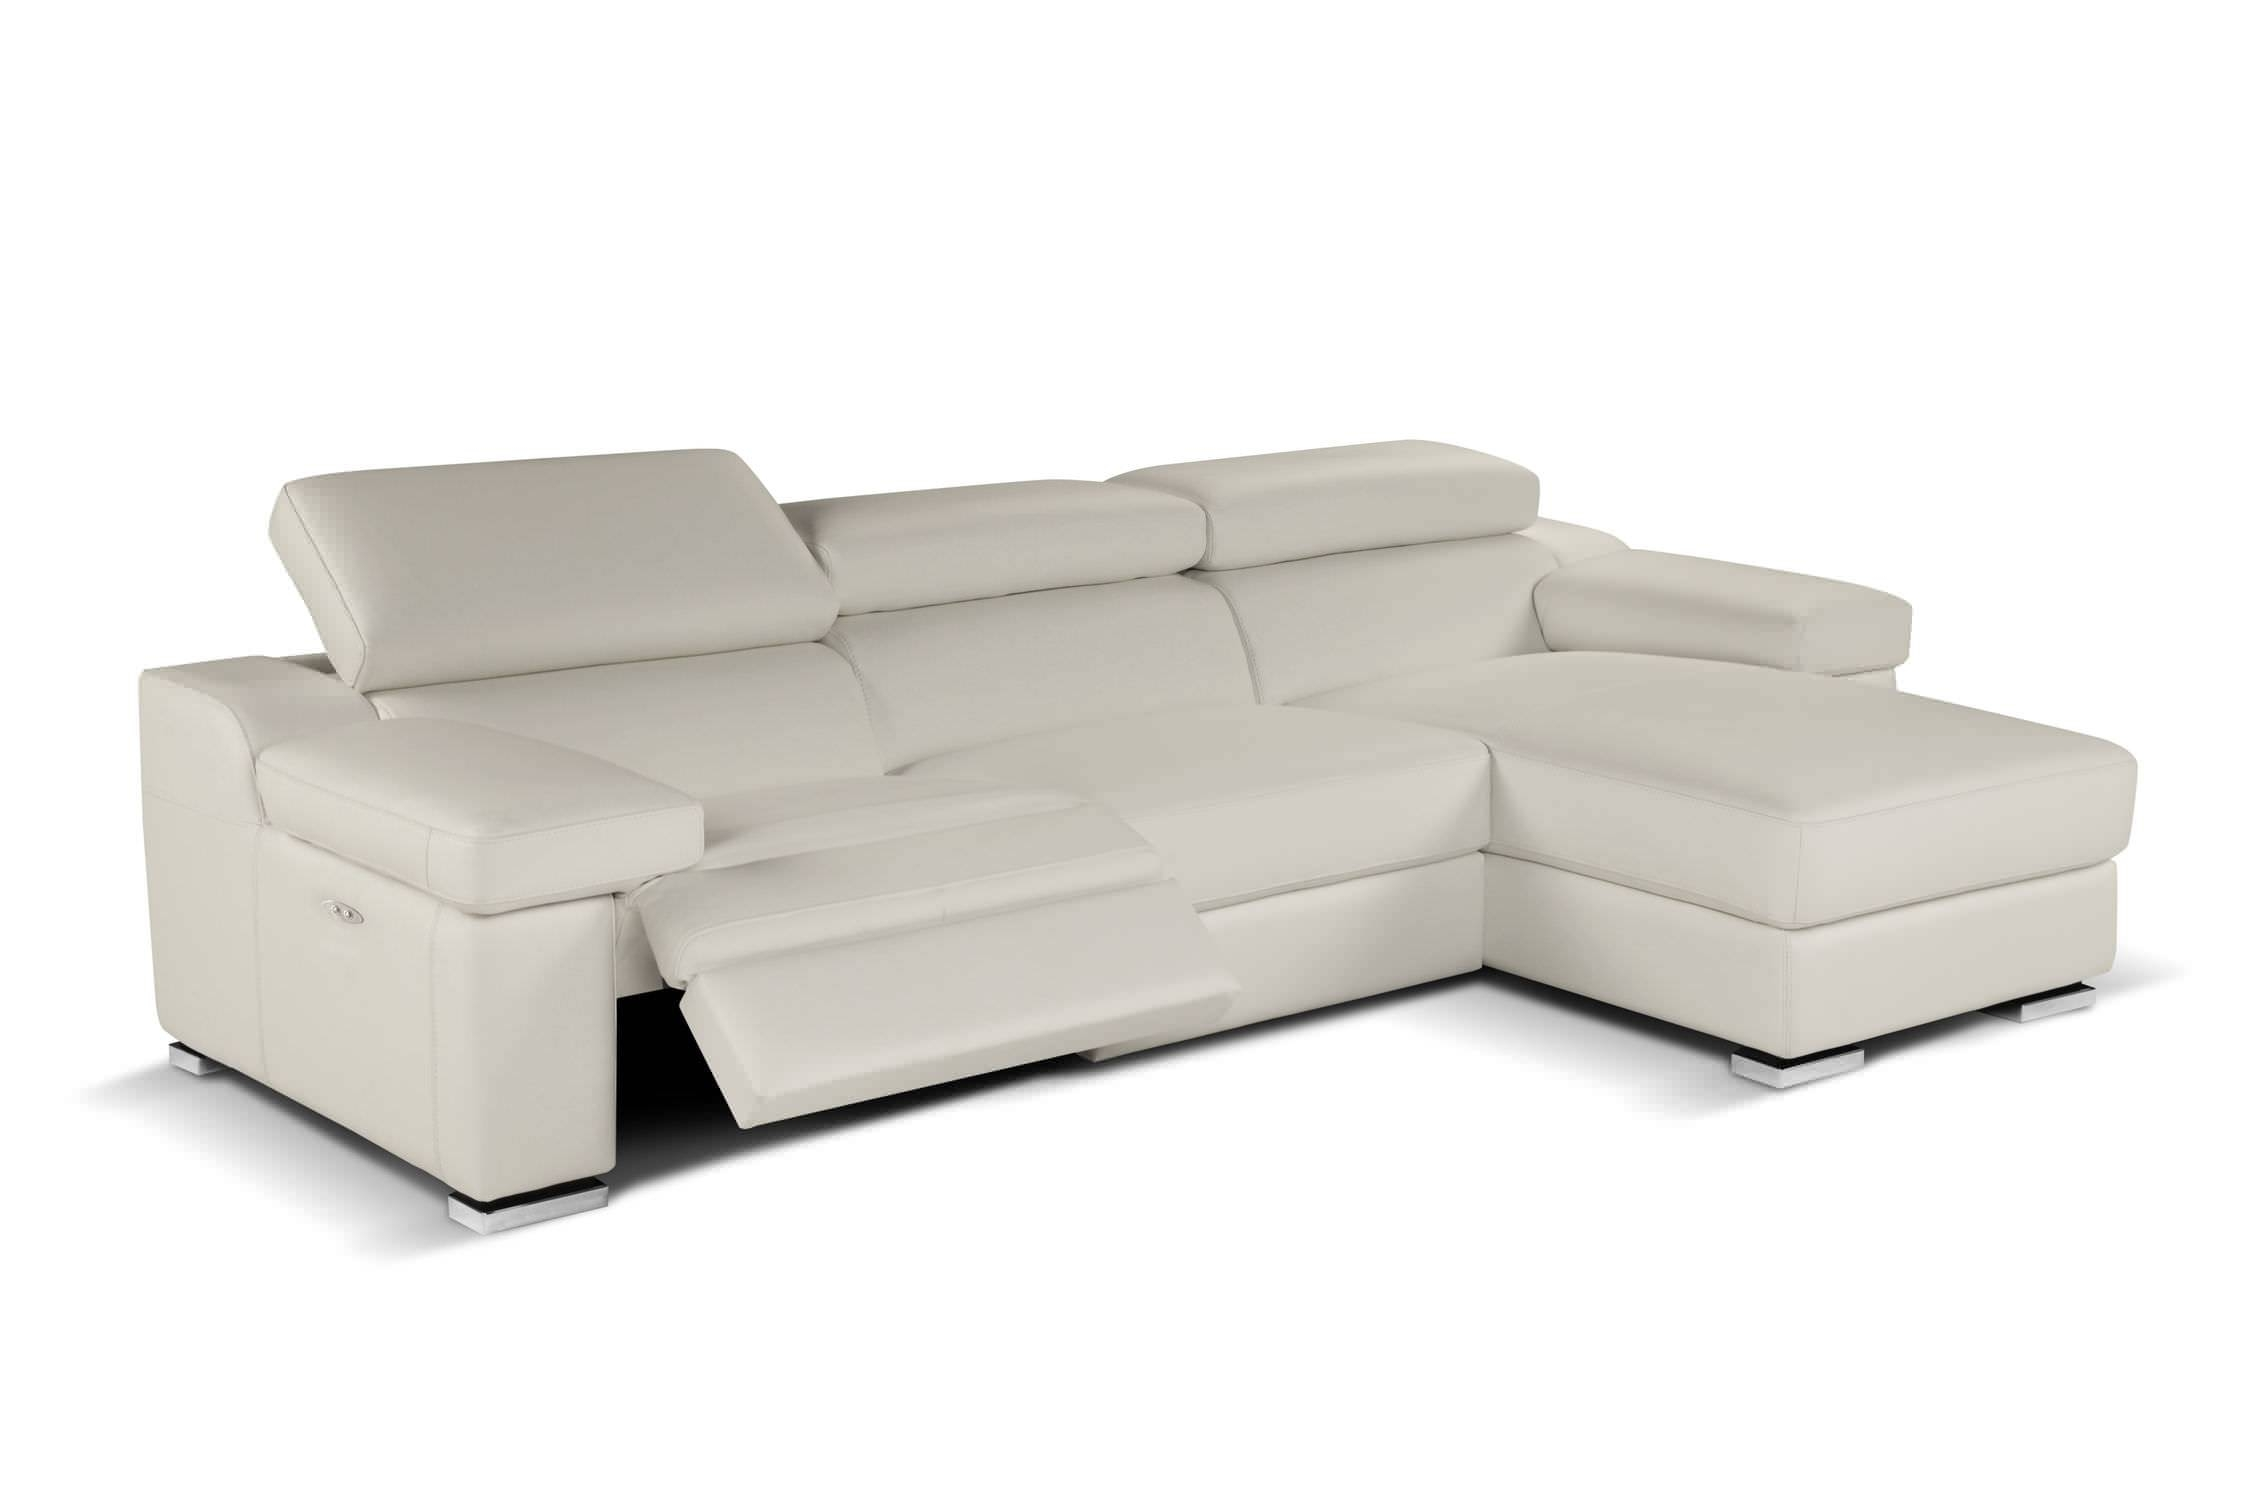 Contemporary Sofa / Leather / 2 Seater / Reclining – Rebecca In 2 Seater Recliner Leather Sofas (View 5 of 30)